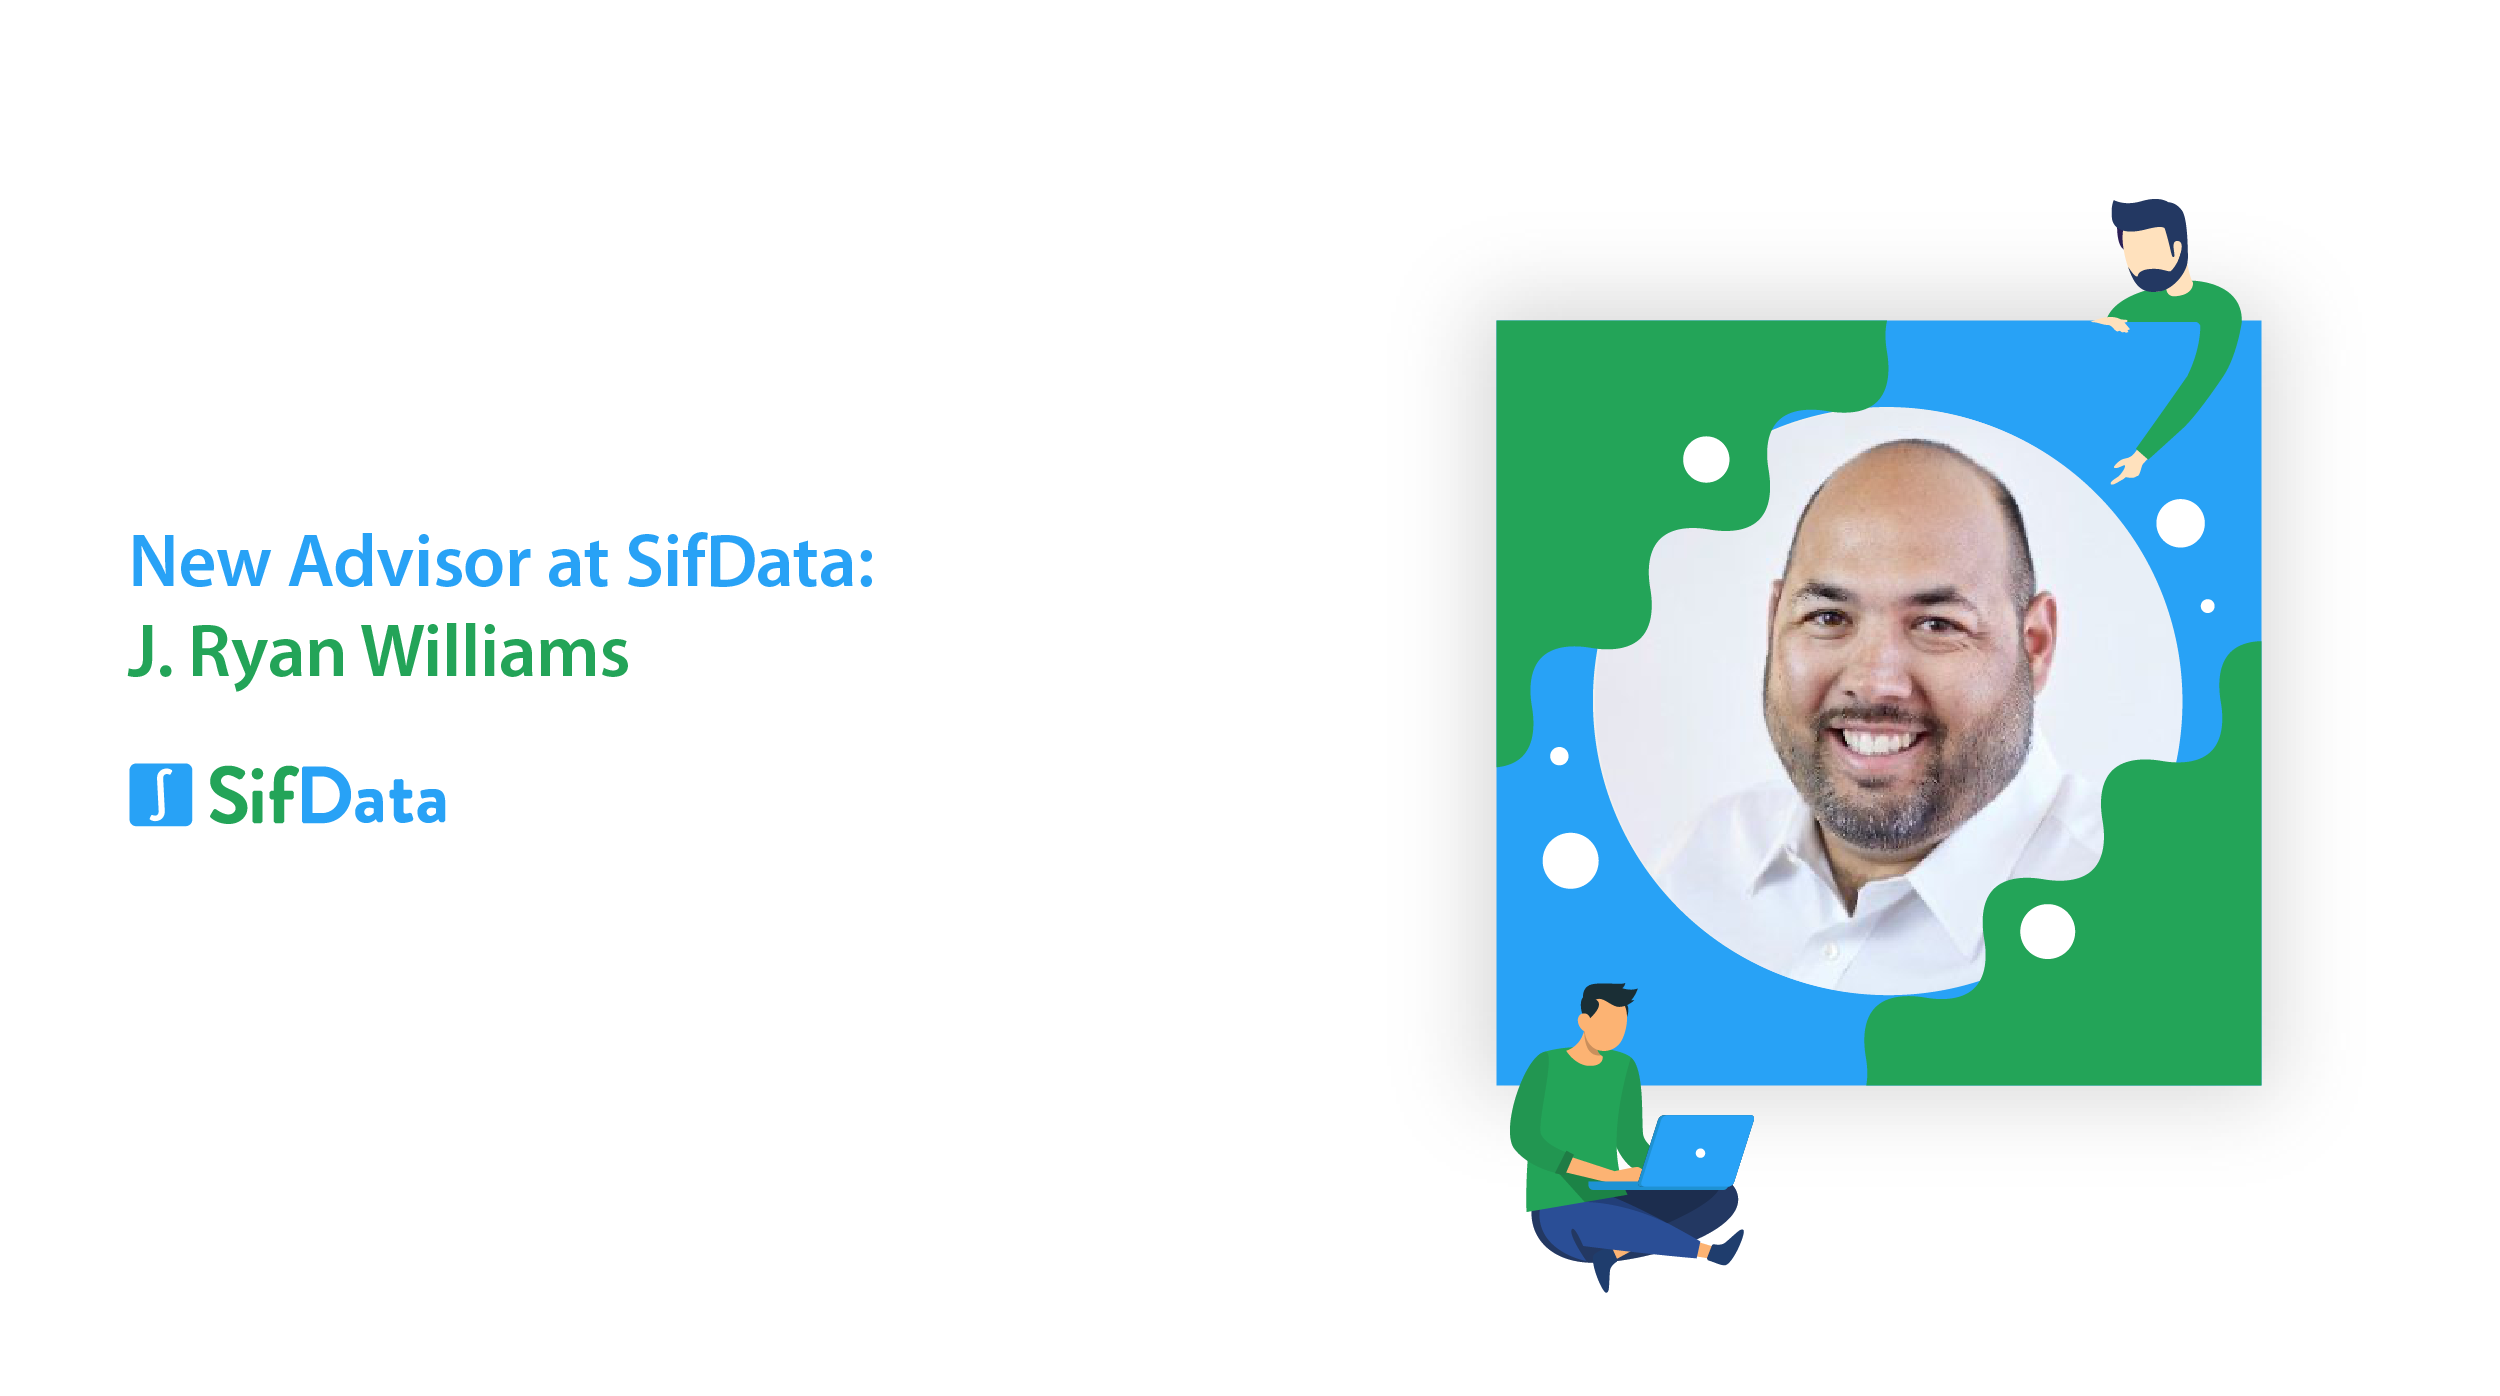 SIFDATA WELCOMES J. RYAN WILLIAMS TO ADVISOR ROLE